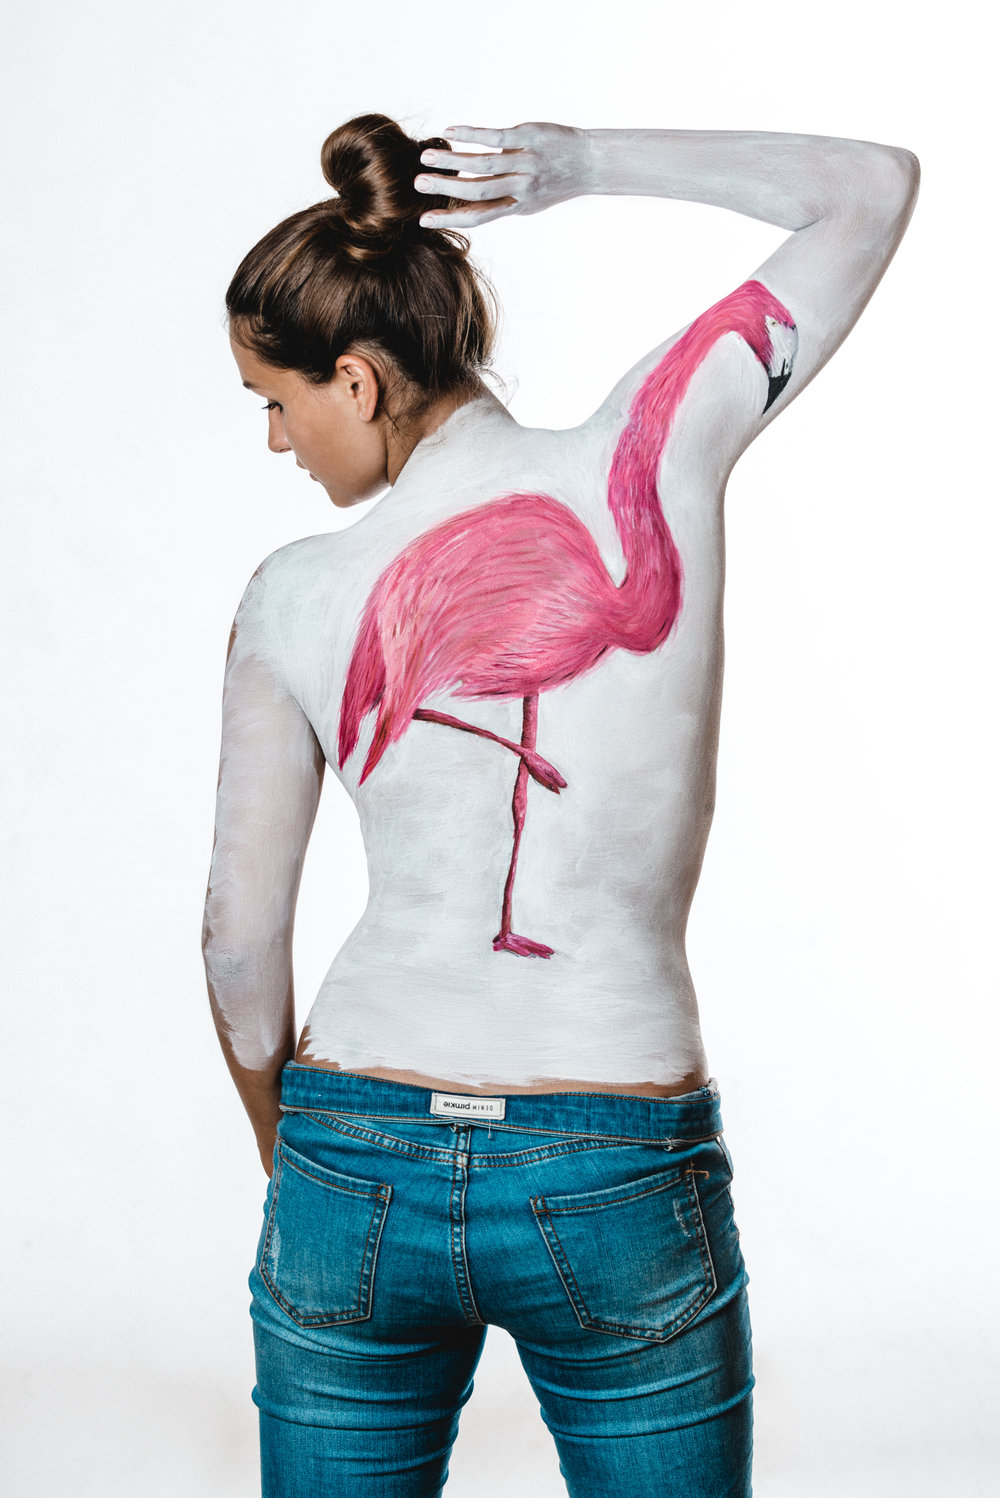 20170711_Bodypaint_Flamingo_14.jpg